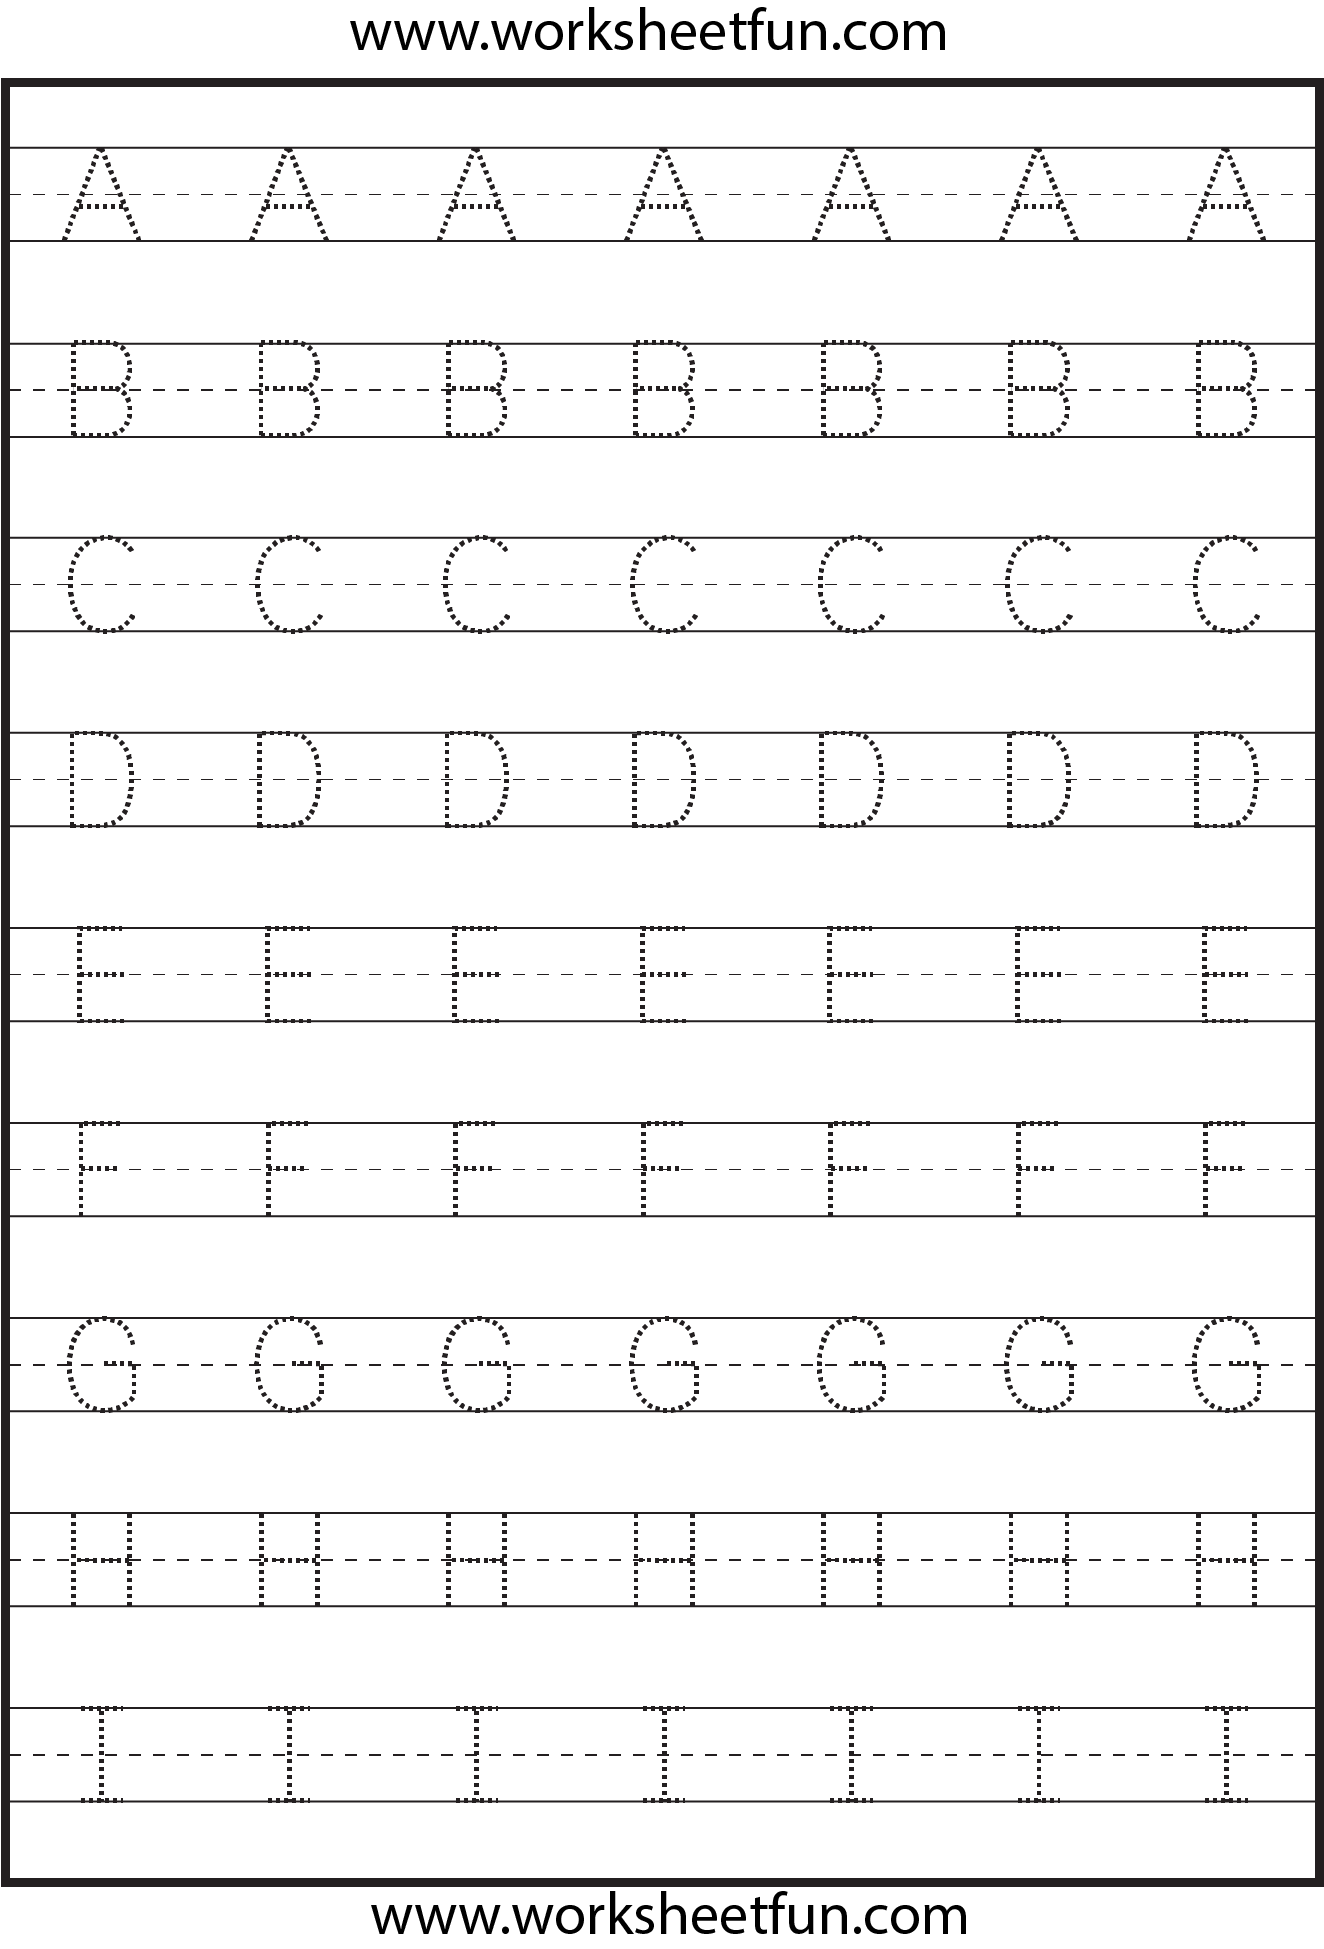 worksheet Trace The Letter S Worksheets tracing uppercase letters capital 3 worksheets free letter tracing